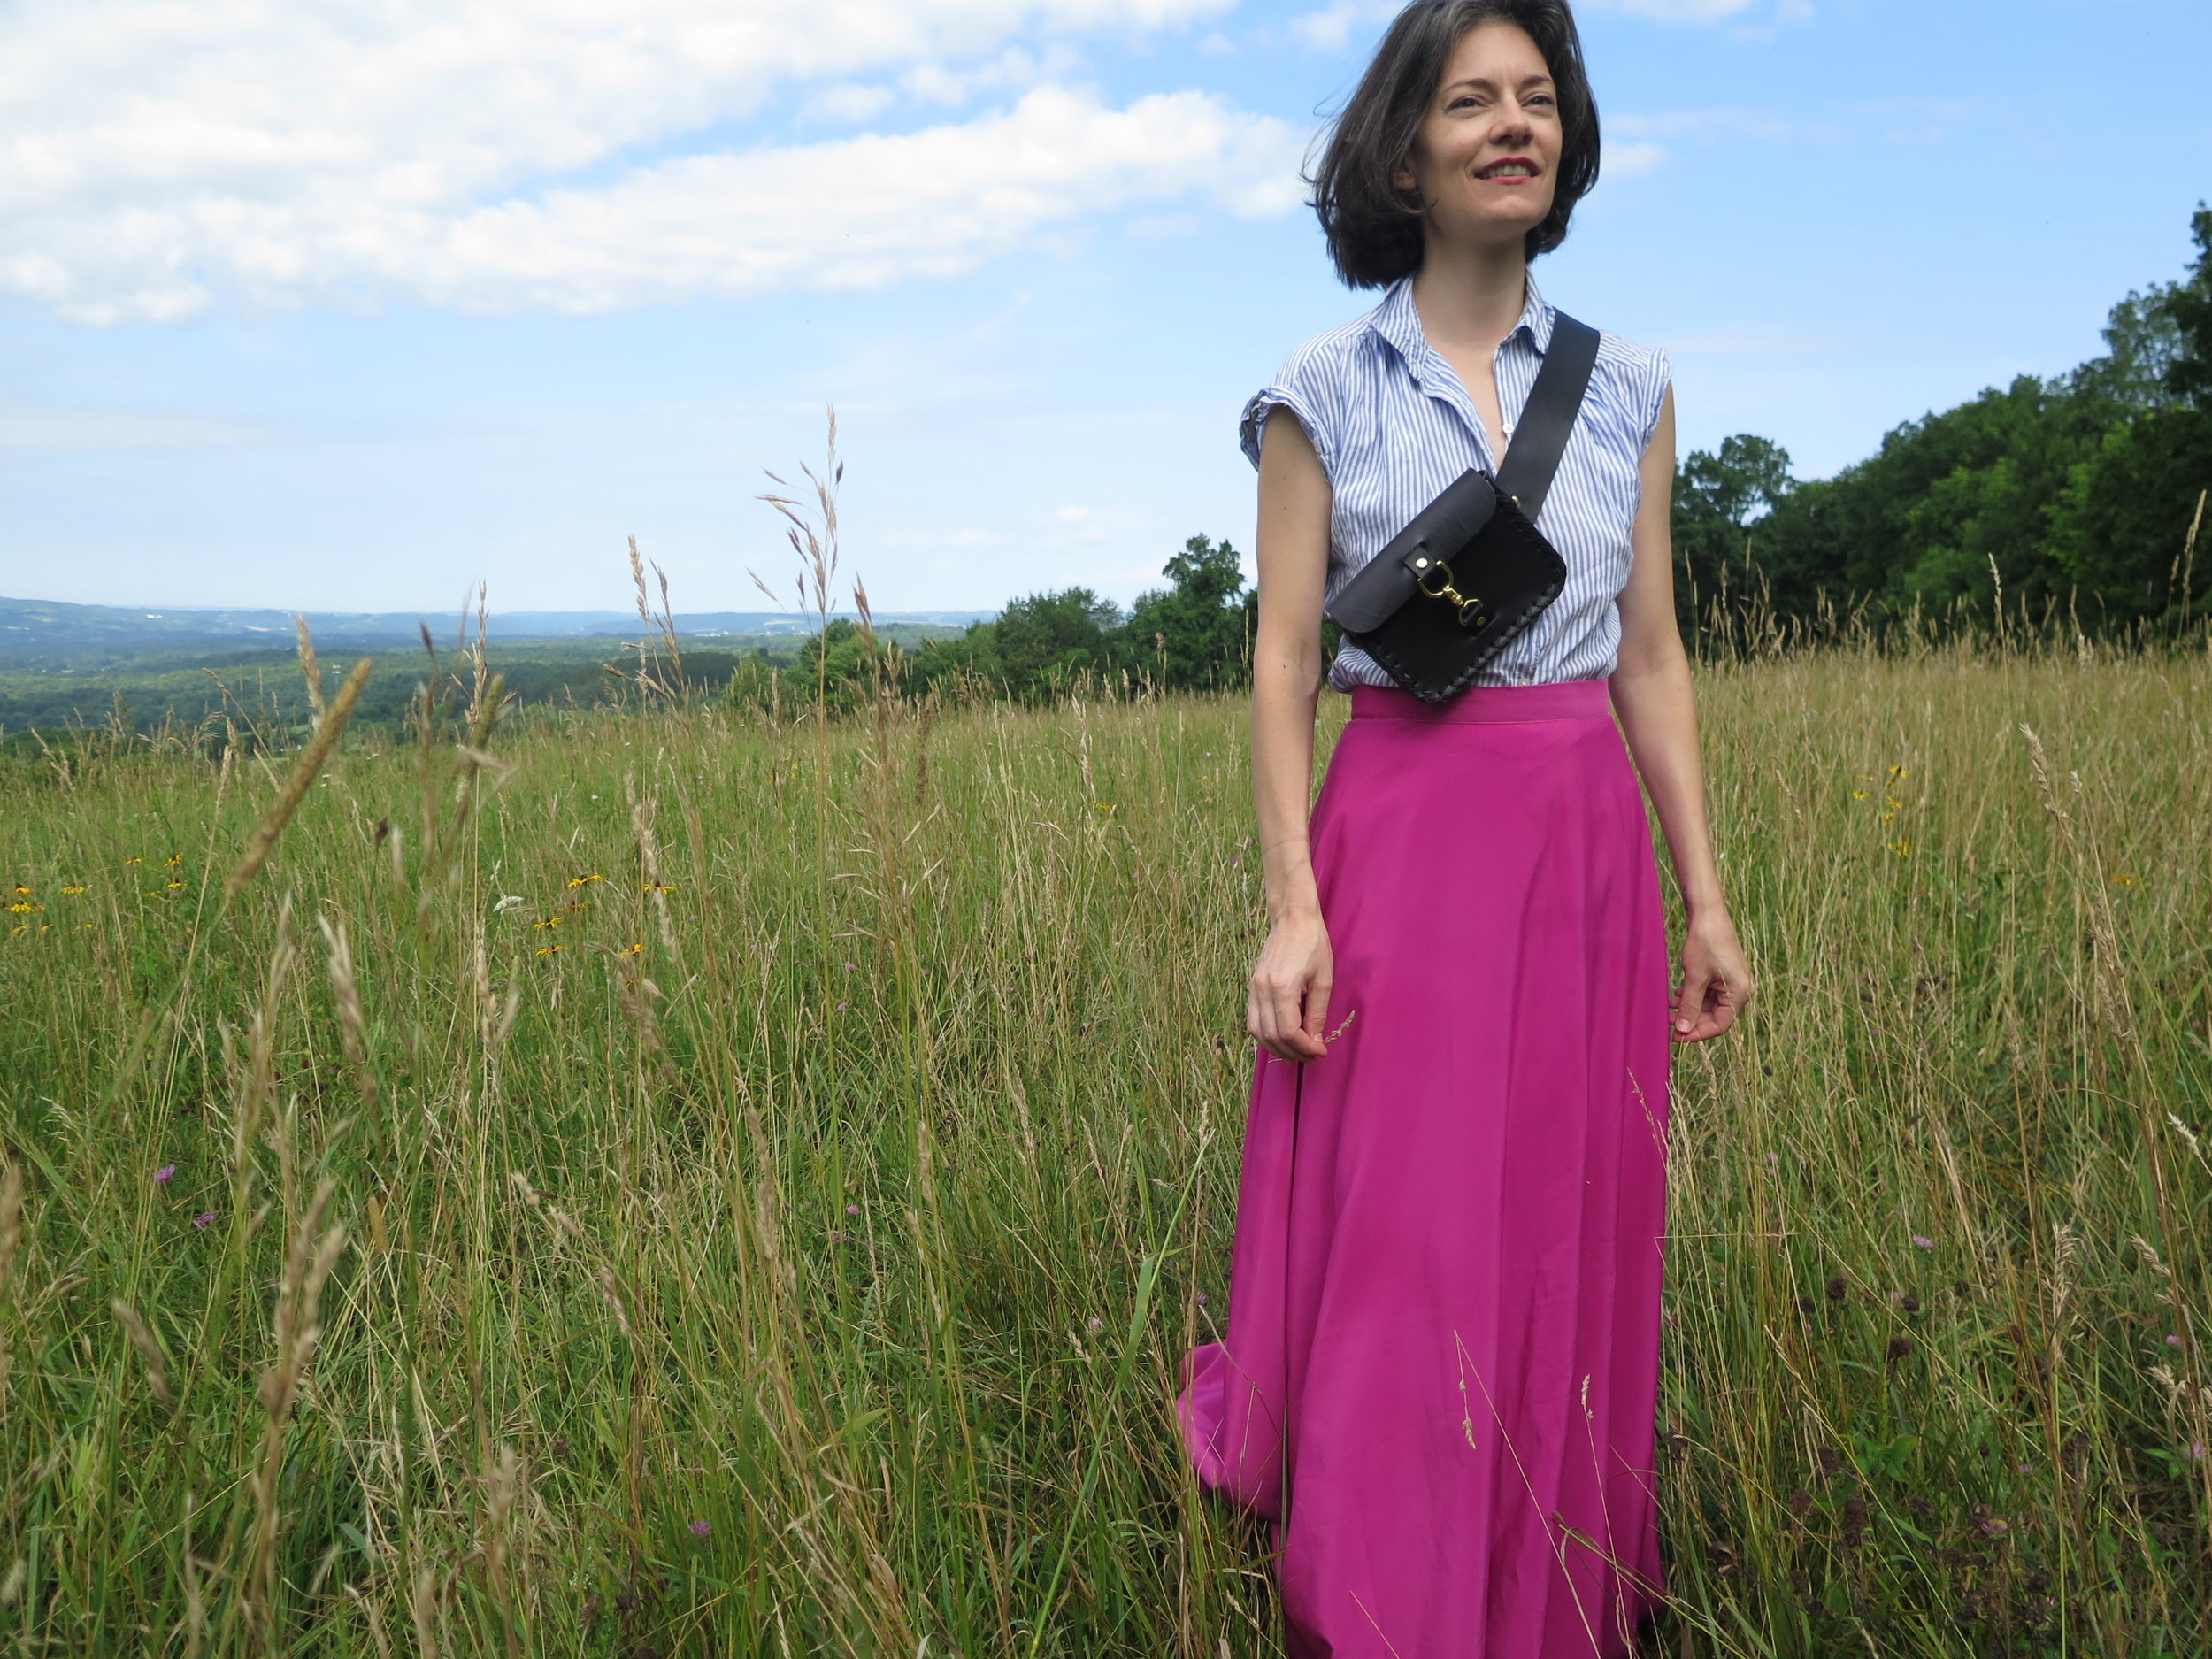 leather belt bag in black by mary savel in a country field 7.JPG